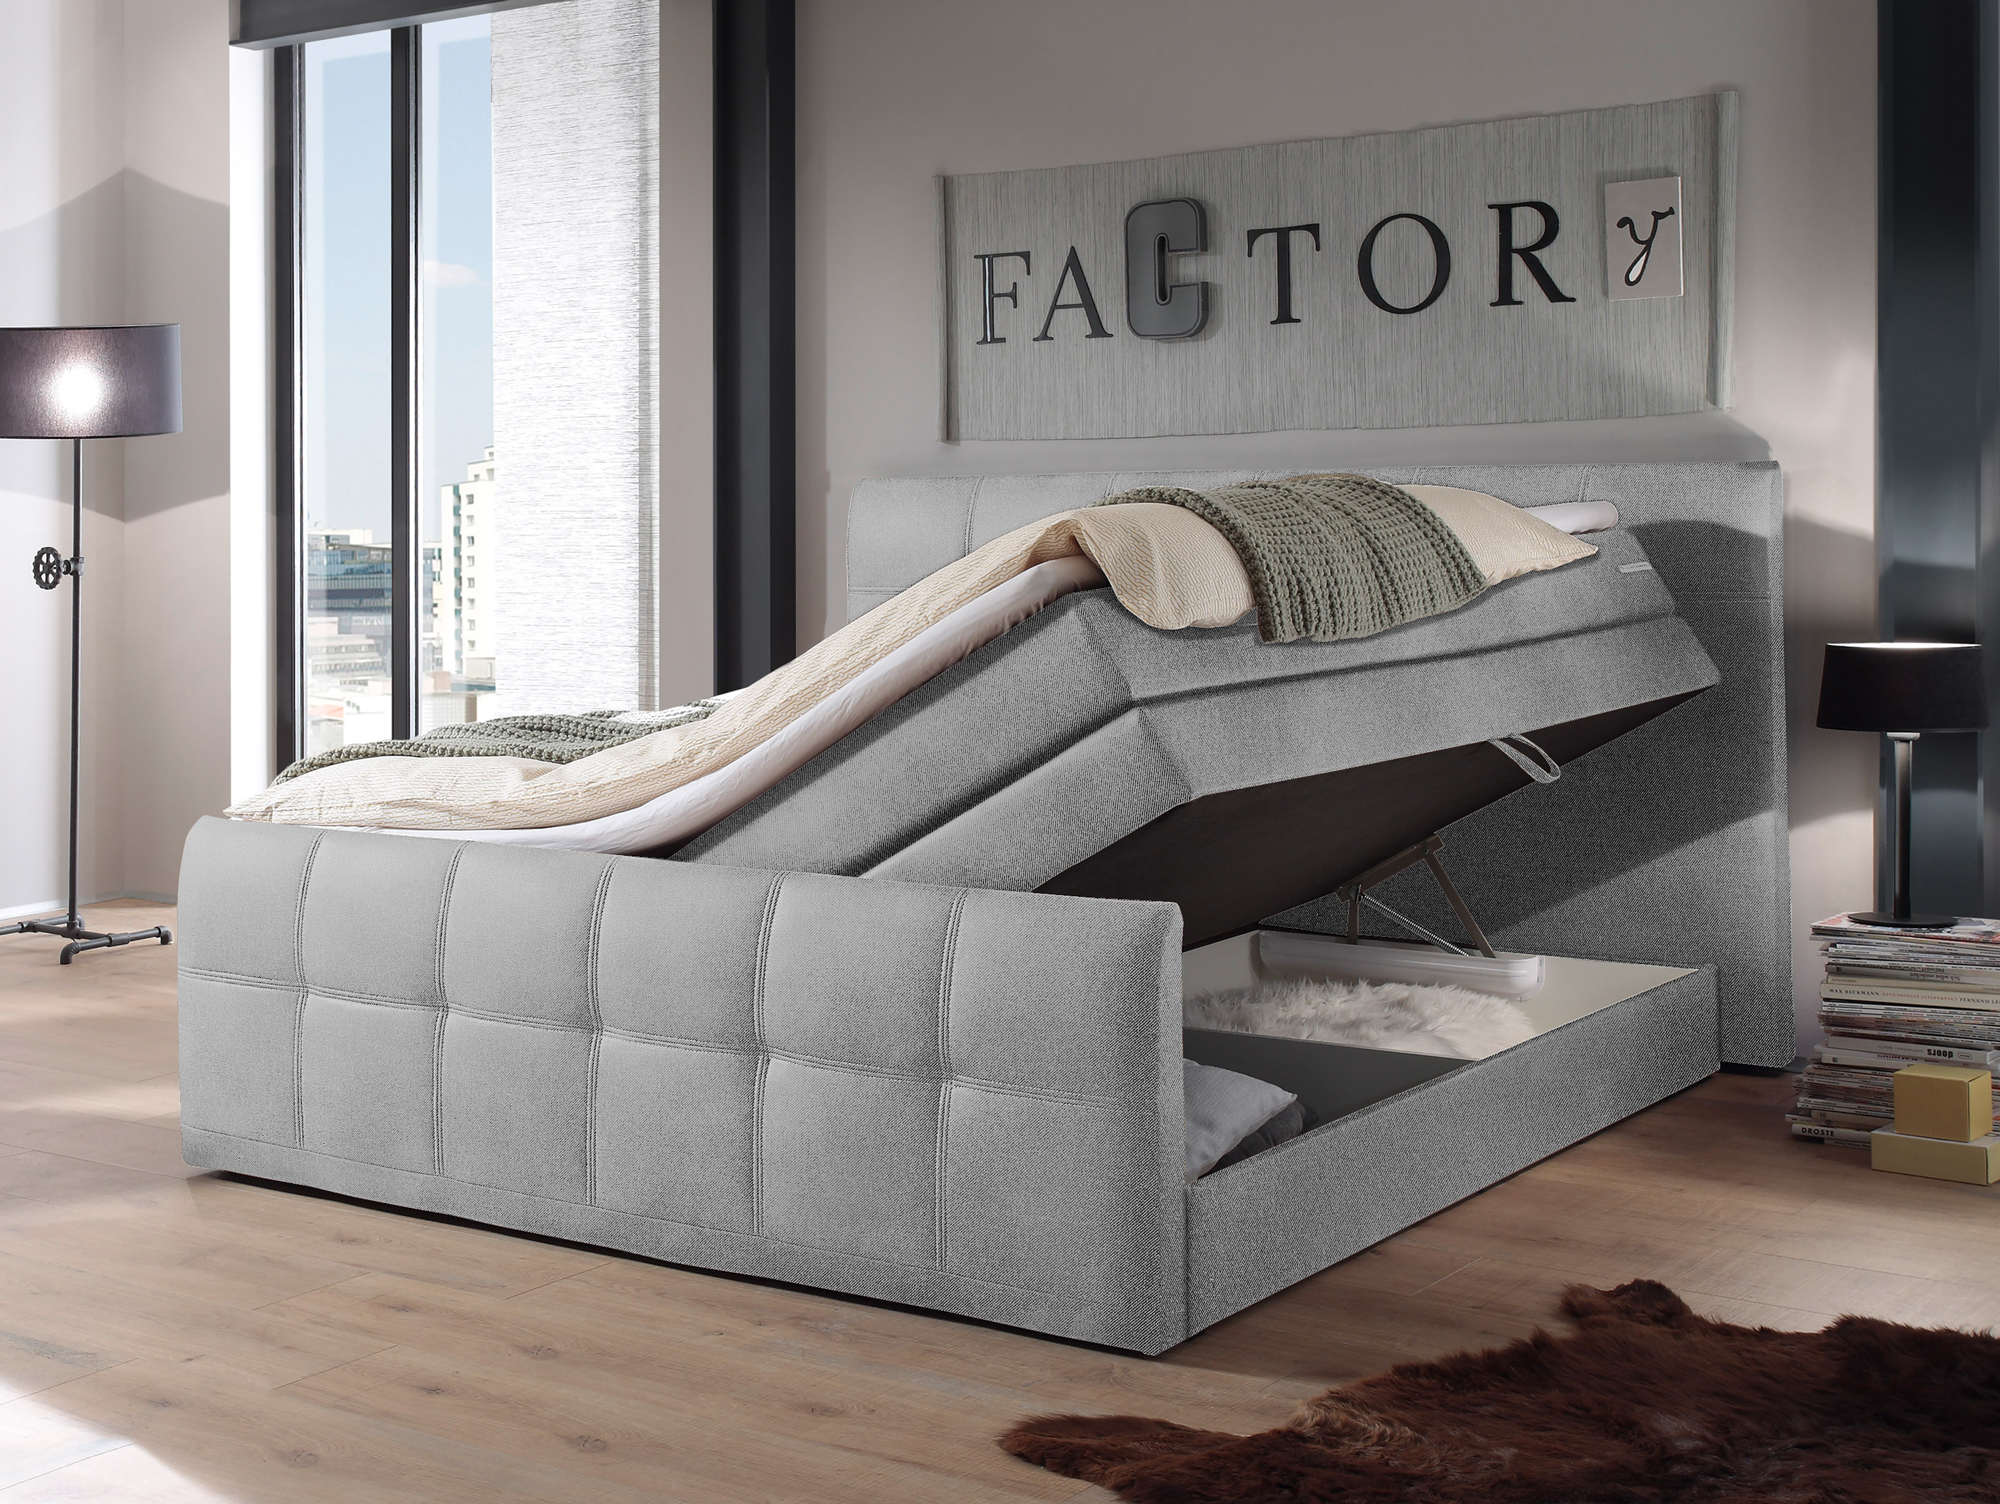 samara boxspringbett 180x200 cm grau. Black Bedroom Furniture Sets. Home Design Ideas